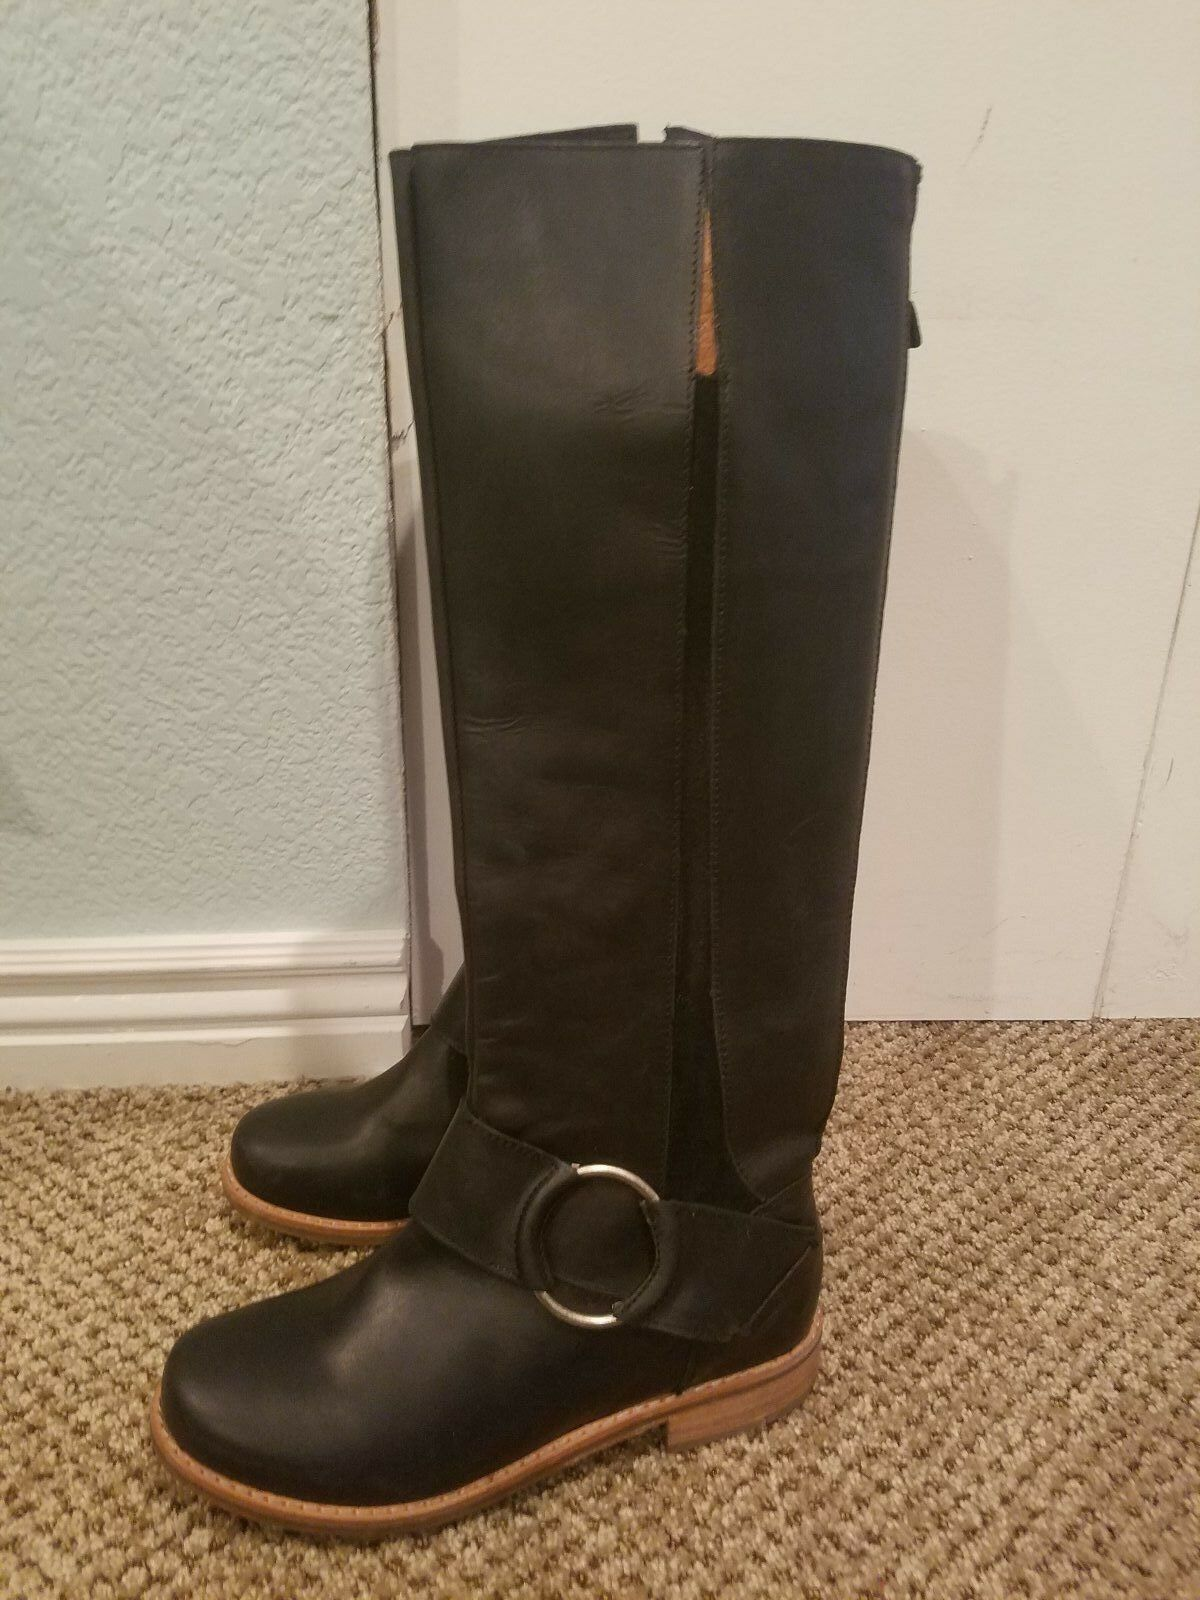 330 OLUKAI 'Holo Lio' Boot Boot Boot Sculptural leather insets Riding Black Leather sz 5 5b1391